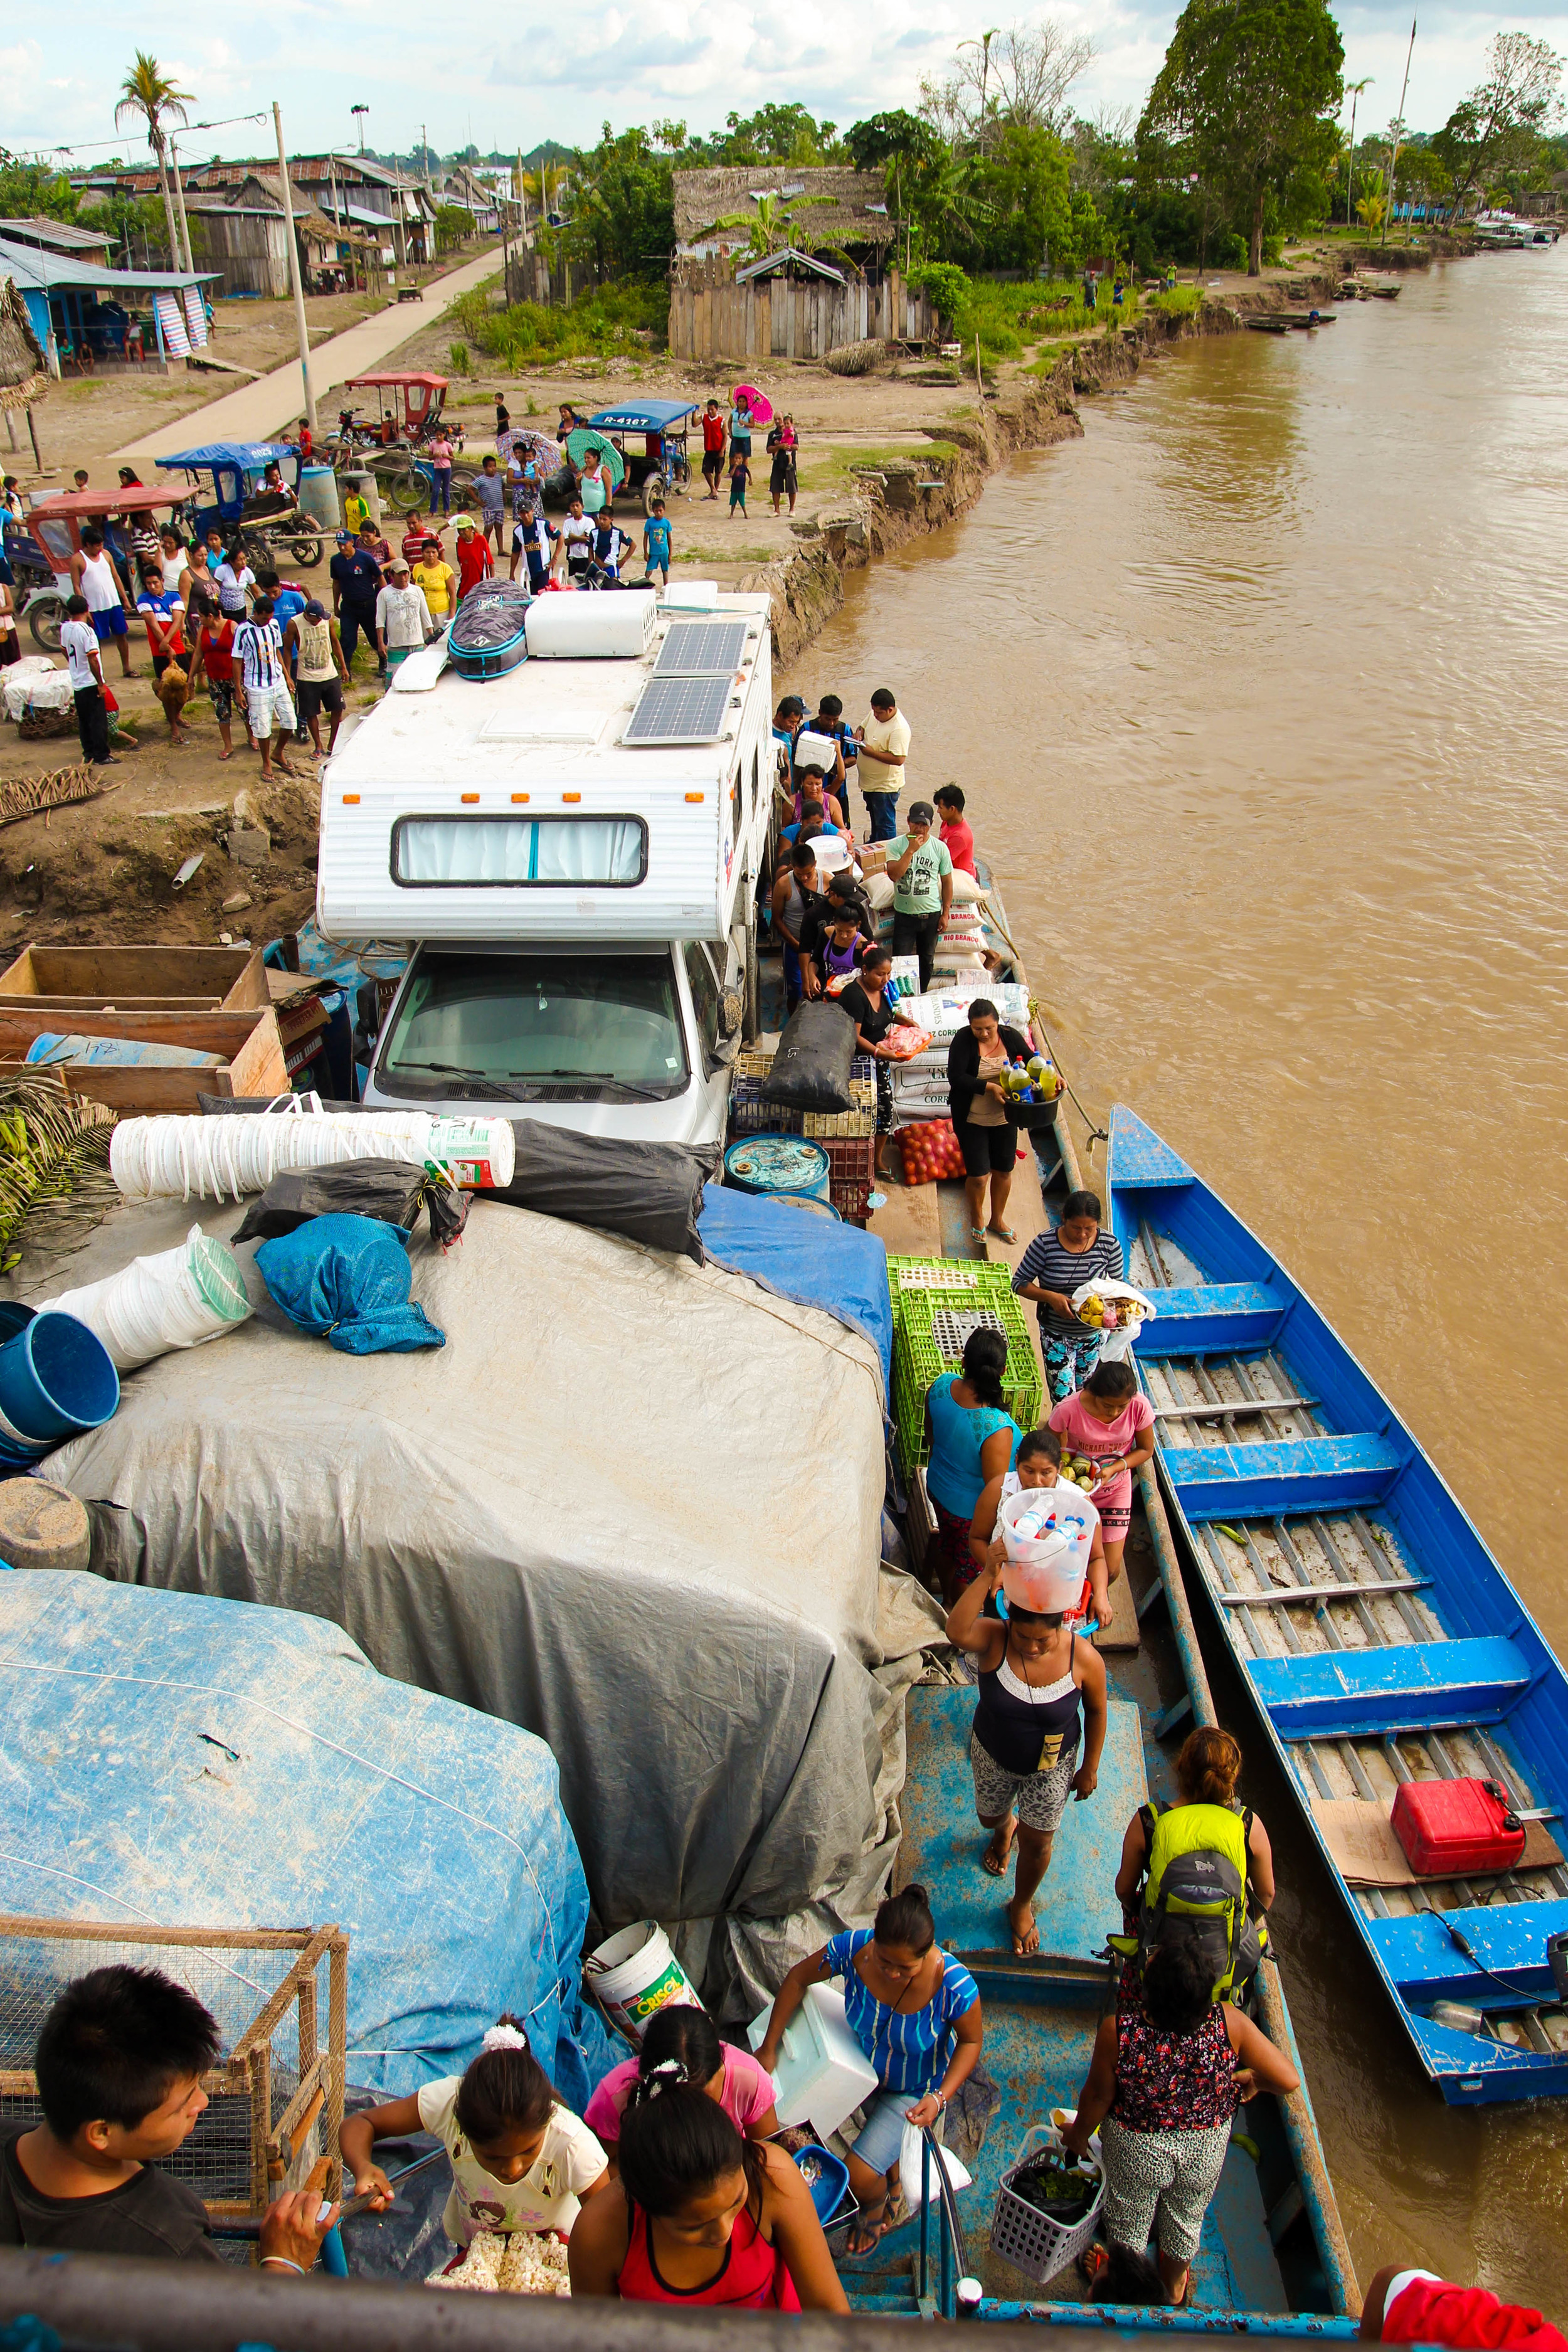 Flow of people on and off of the boat while docked at a village along the Amazon River.